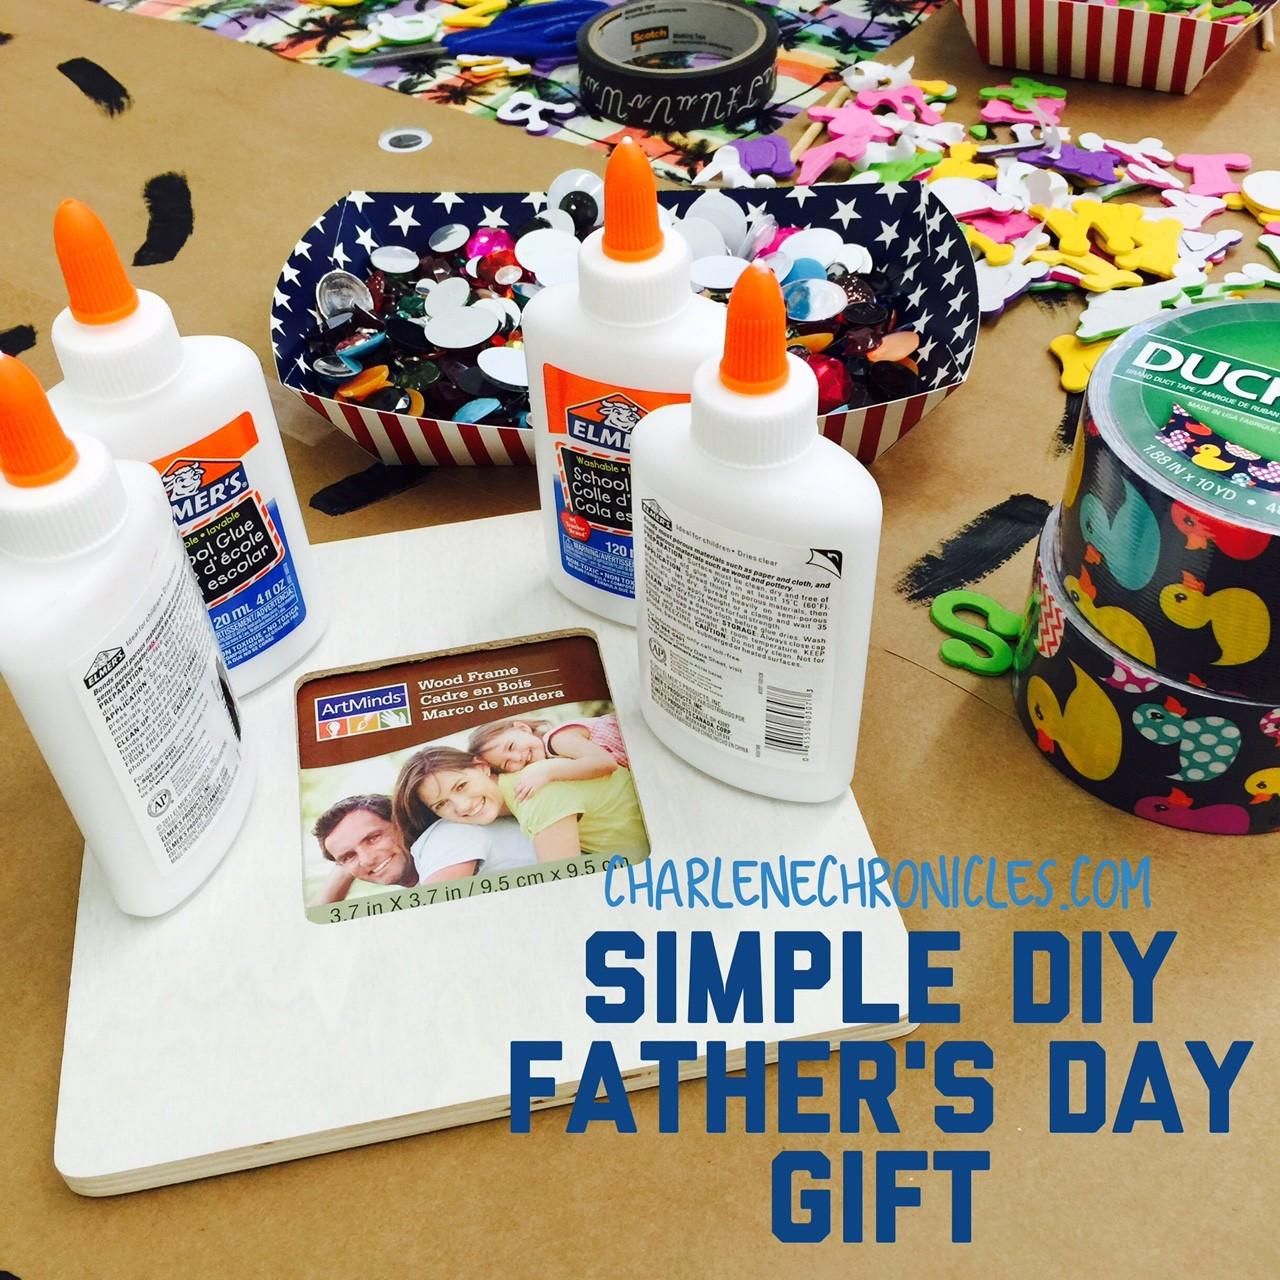 Simple Diy Father Day Gift Charlene Chronicles